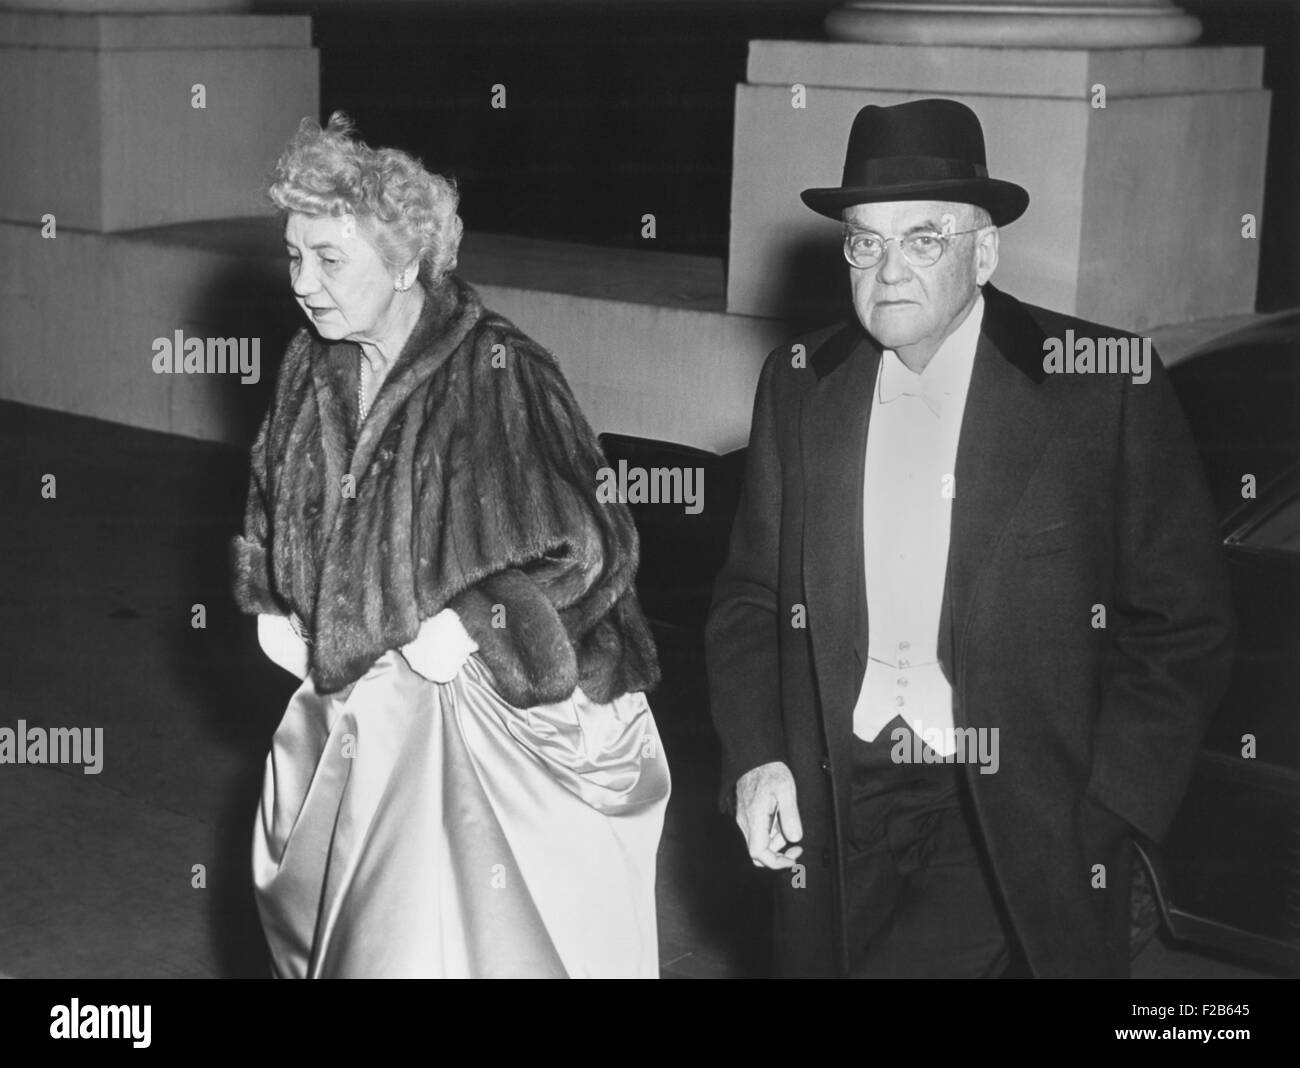 Sec. of State John Foster Dulles and his wife, arriving at state dinner for Queen Elizabeth II. Oct 17, 1957. - - Stock Image